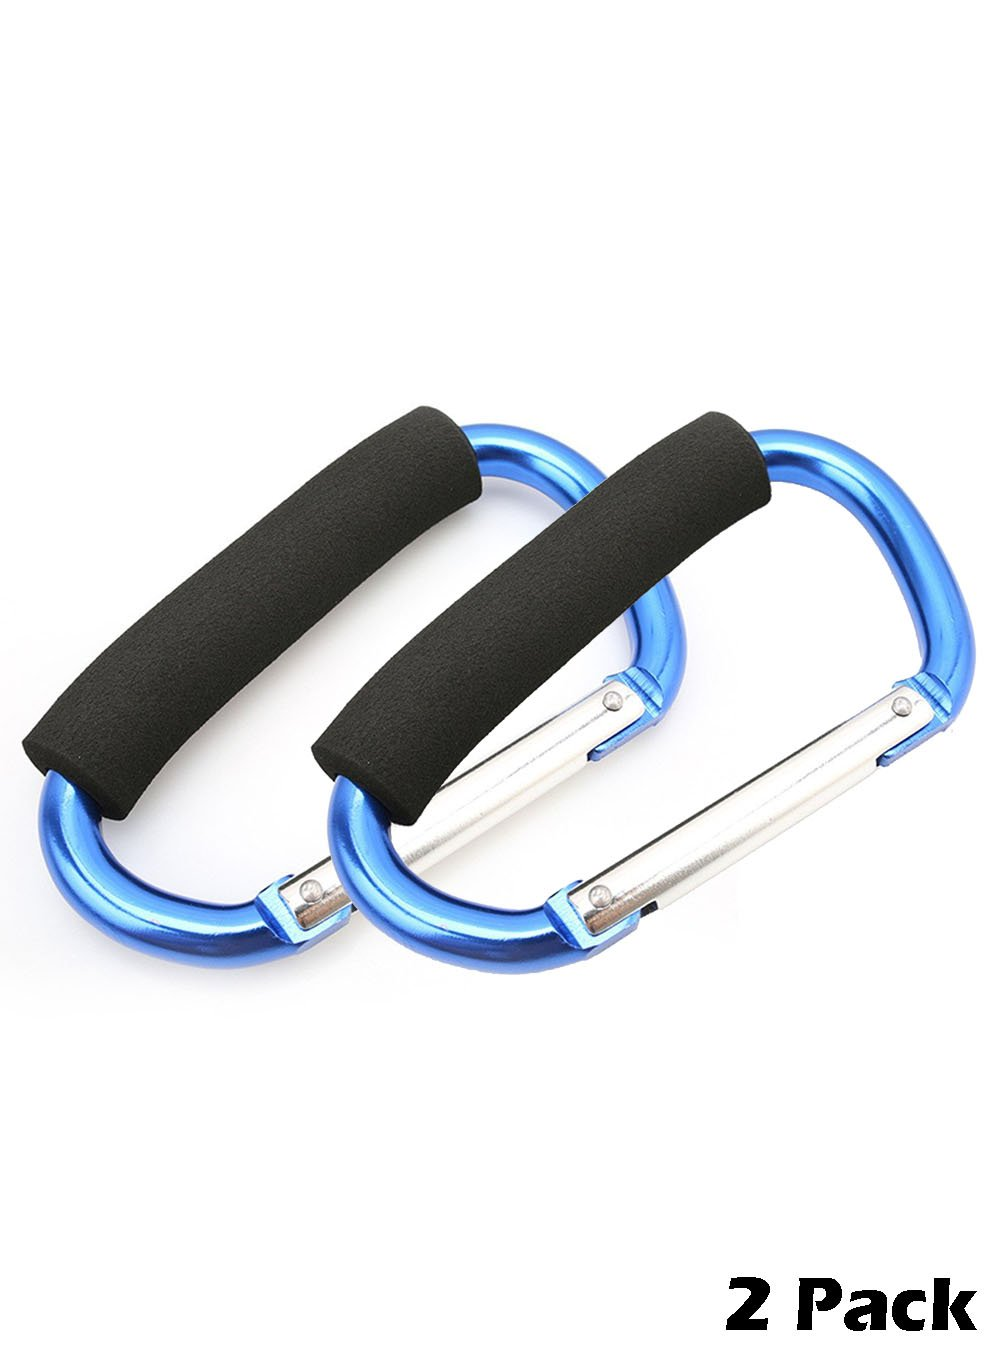 Snowmanna- Assorted Colors Large D Type Shopping Bag Hook Clip Carry Handle Carabiner with Sponge for Baby Pushchair Pram Stroller Hanger Trolley Mummy Clip Holder (light blue(2pcs))